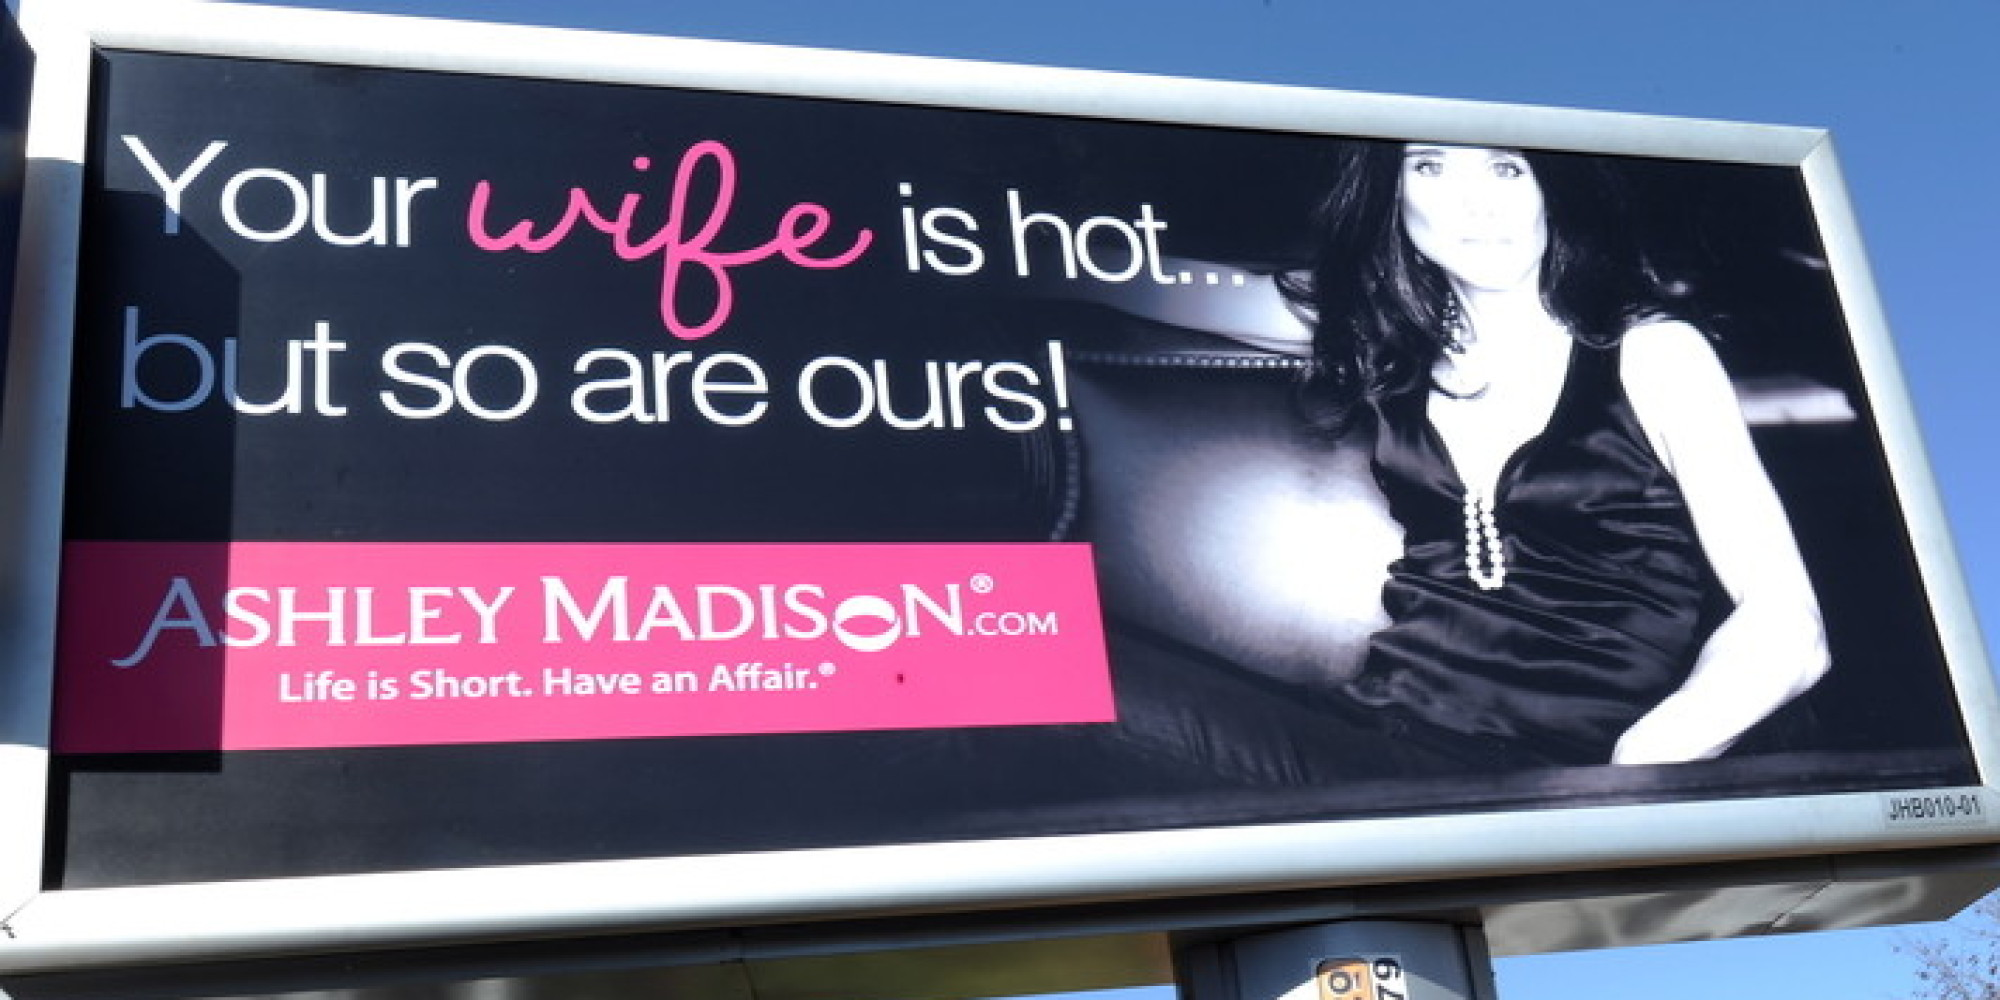 i spent a month on infidelity dating site ashley madison and was